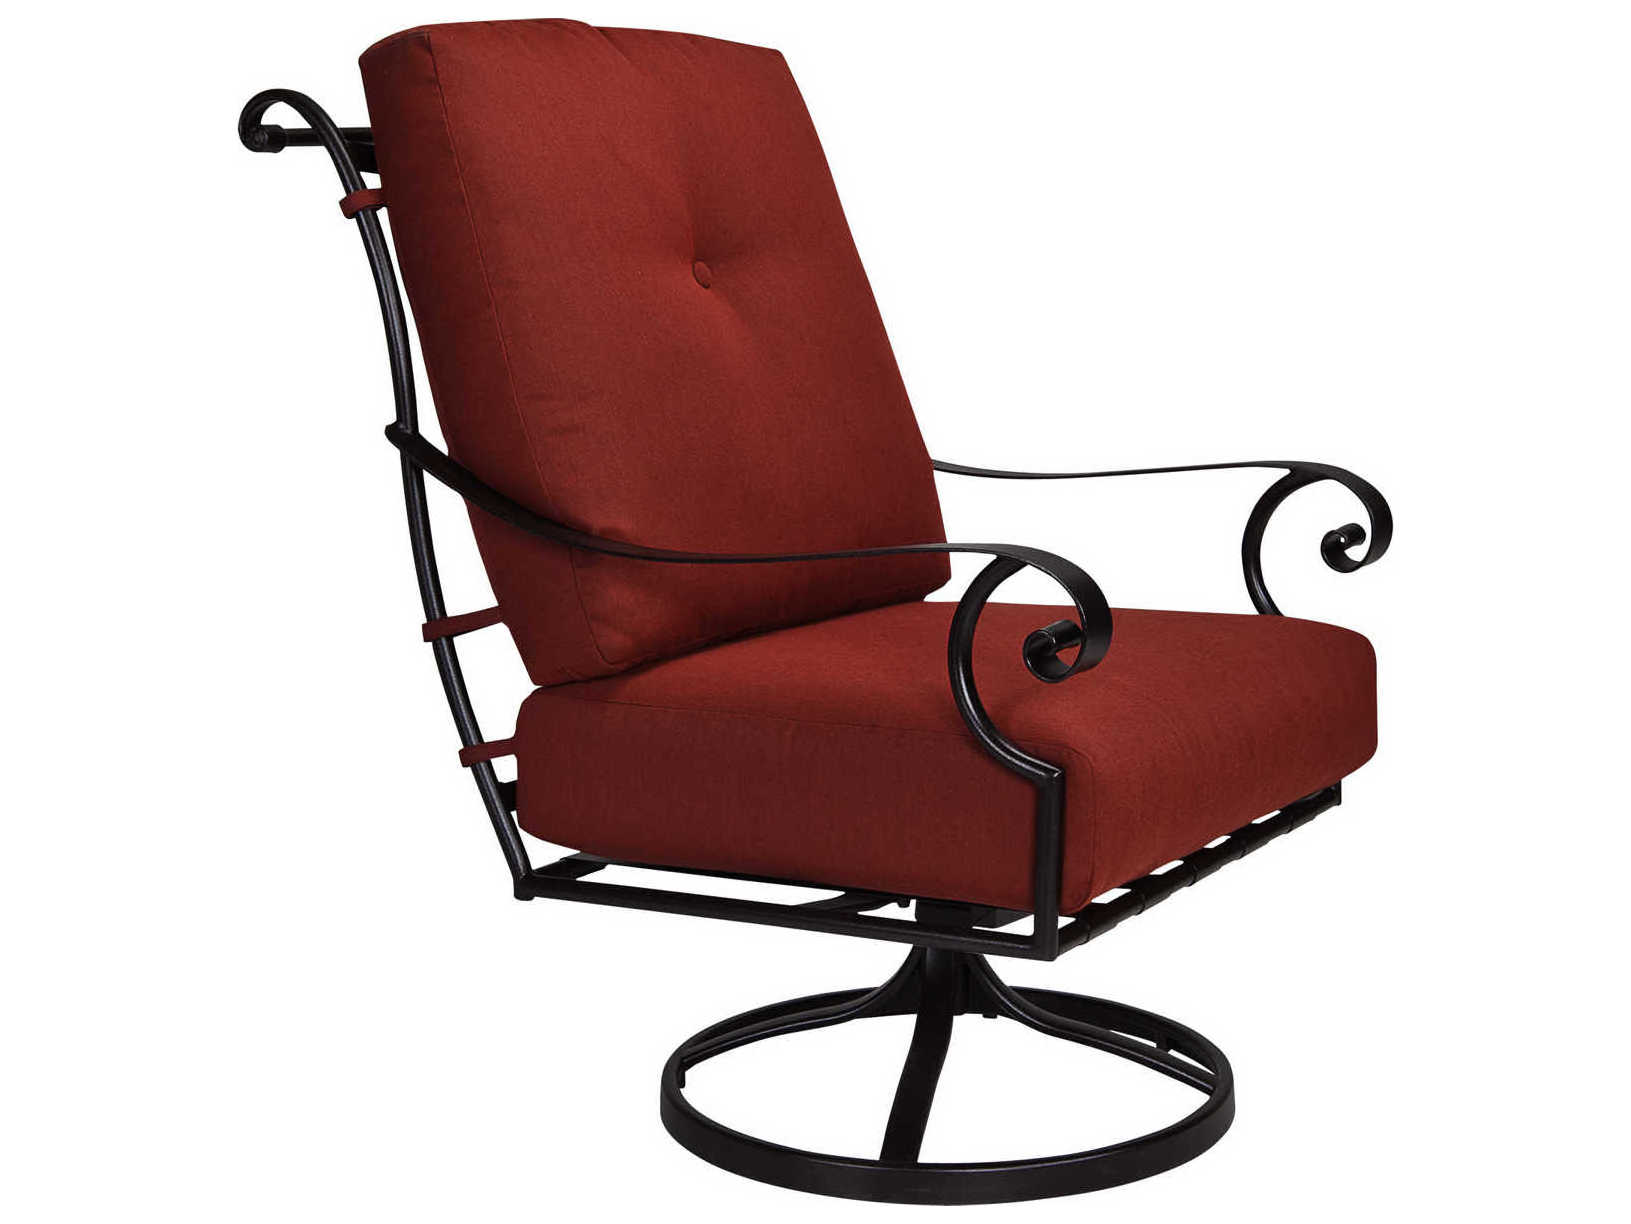 wrought iron rocking chair lucite office on wheels ow lee st charles swivel rocker lounge